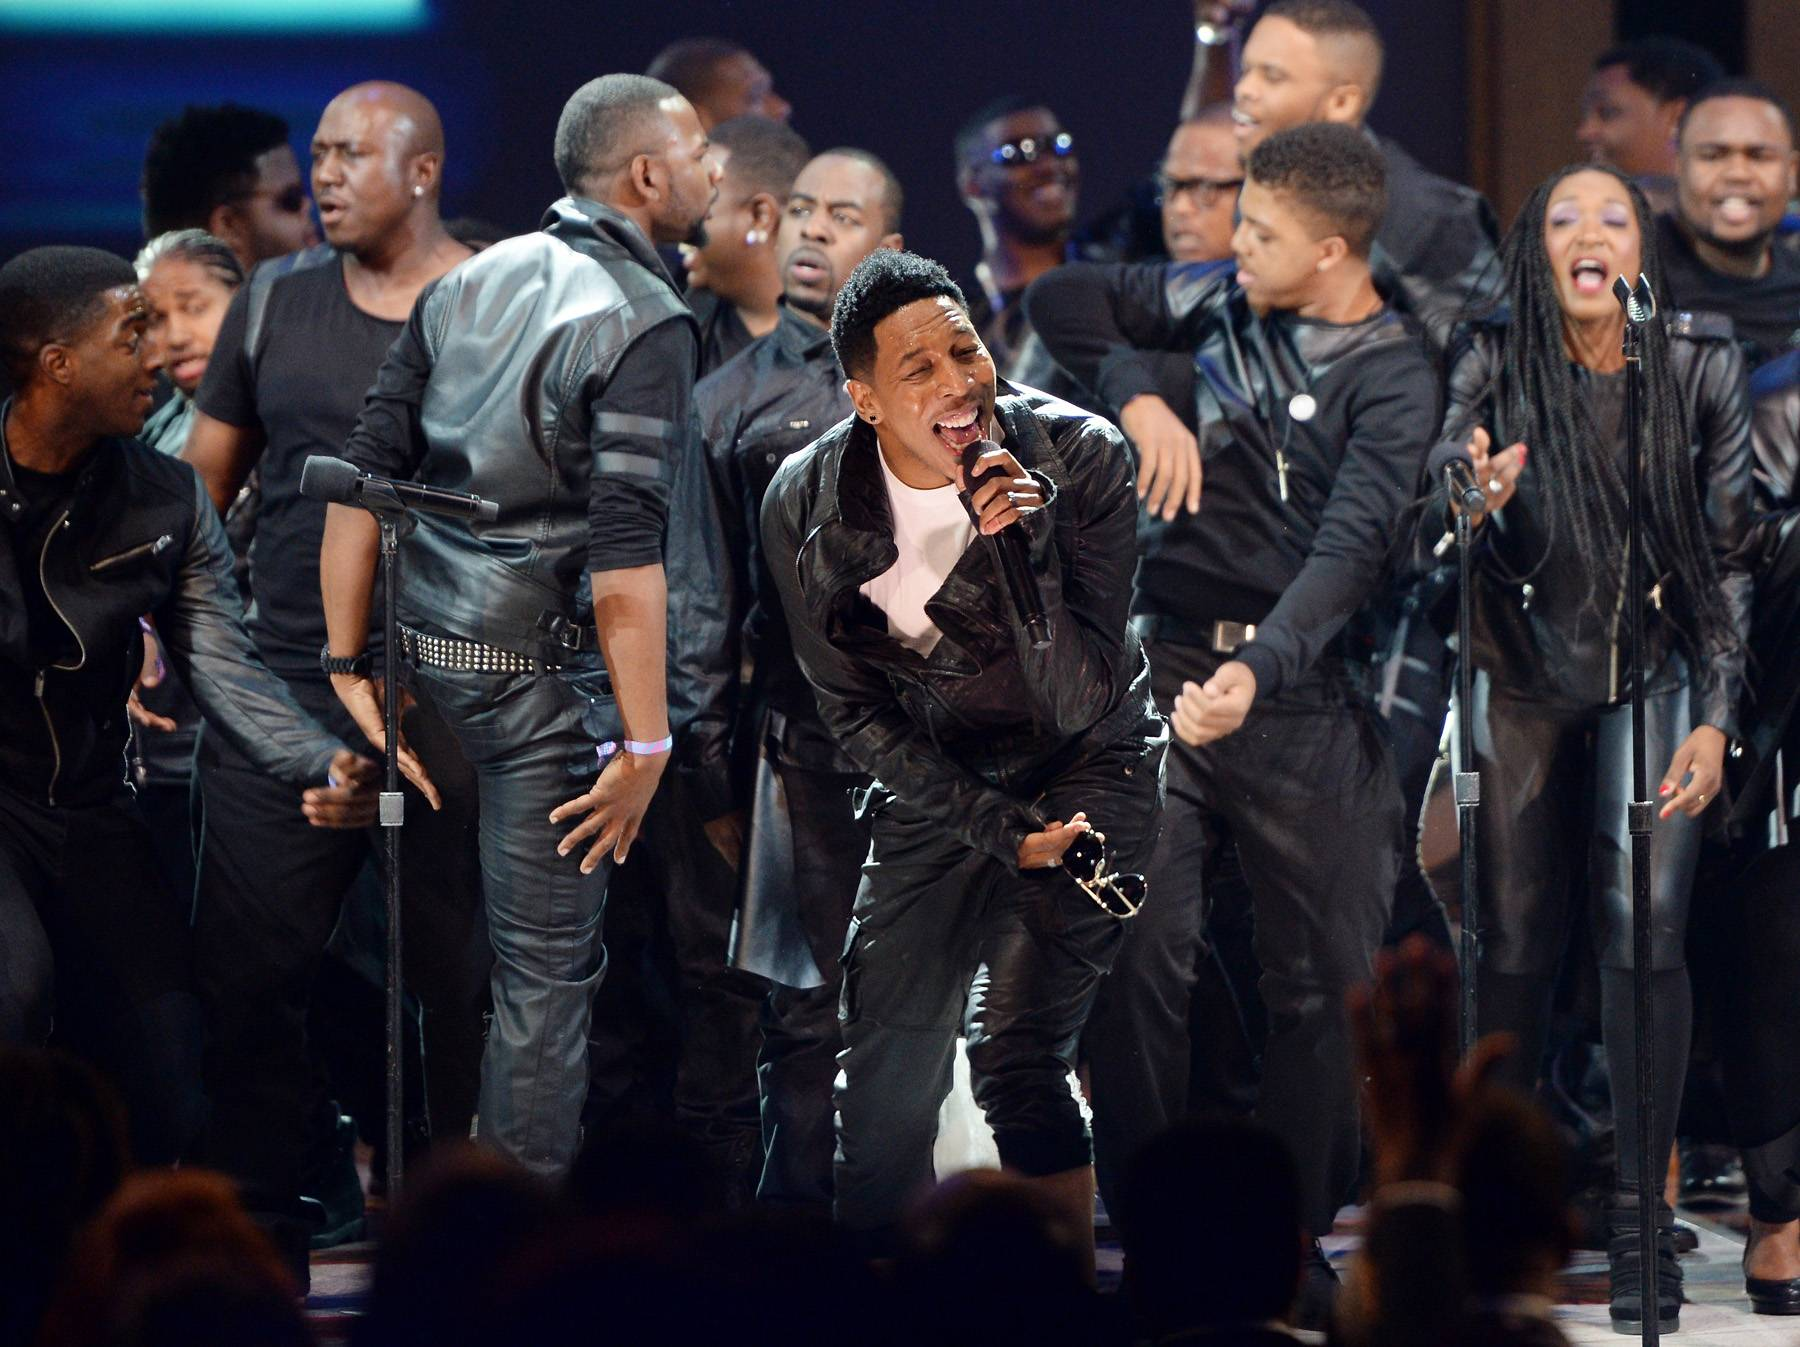 """A """"Great"""" Opening Act - Bringing the crowd to their feet, Deitrick Haddon kicks off Celebration of Gospel with his signature high energy and a swagged out choir to perform the bass thumping """"Great God.""""(Photo: Jason Kempin/Getty Images for BET)"""